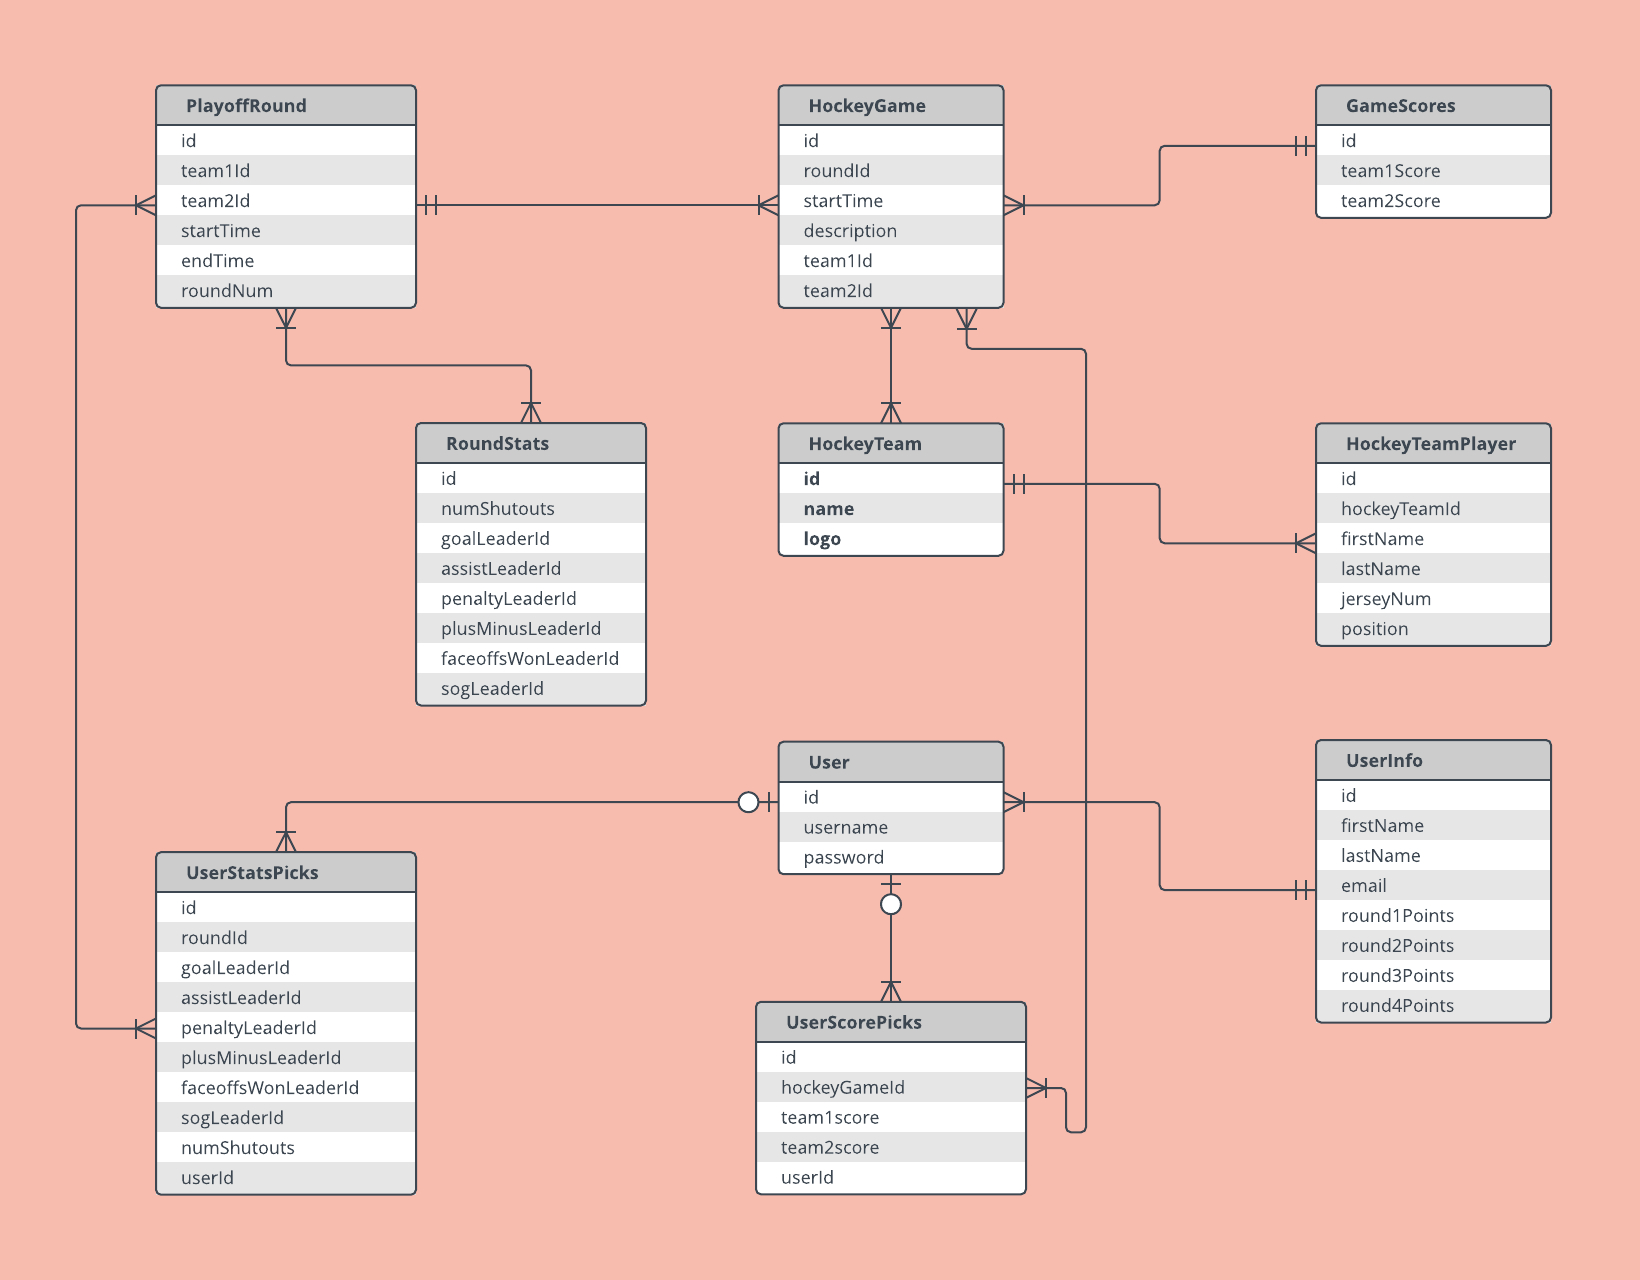 Er Diagram Examples And Templates | Lucidchart intended for Simple Entity Relationship Diagram